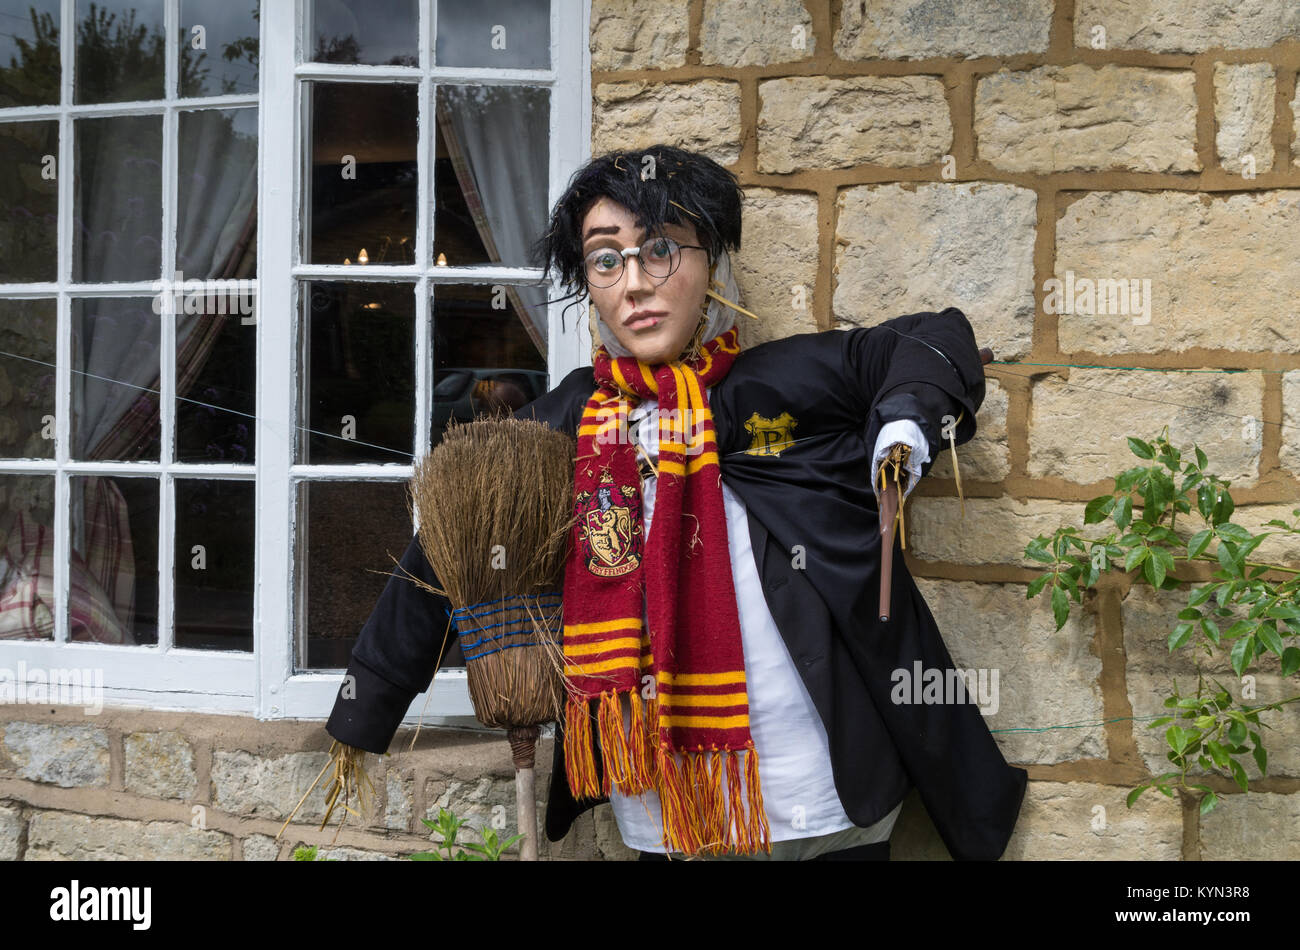 harry potter scarecrow high resolution stock photography and images alamy https www alamy com stock photo scarecrow in the form of harry potter one of the entrants for the 171953020 html